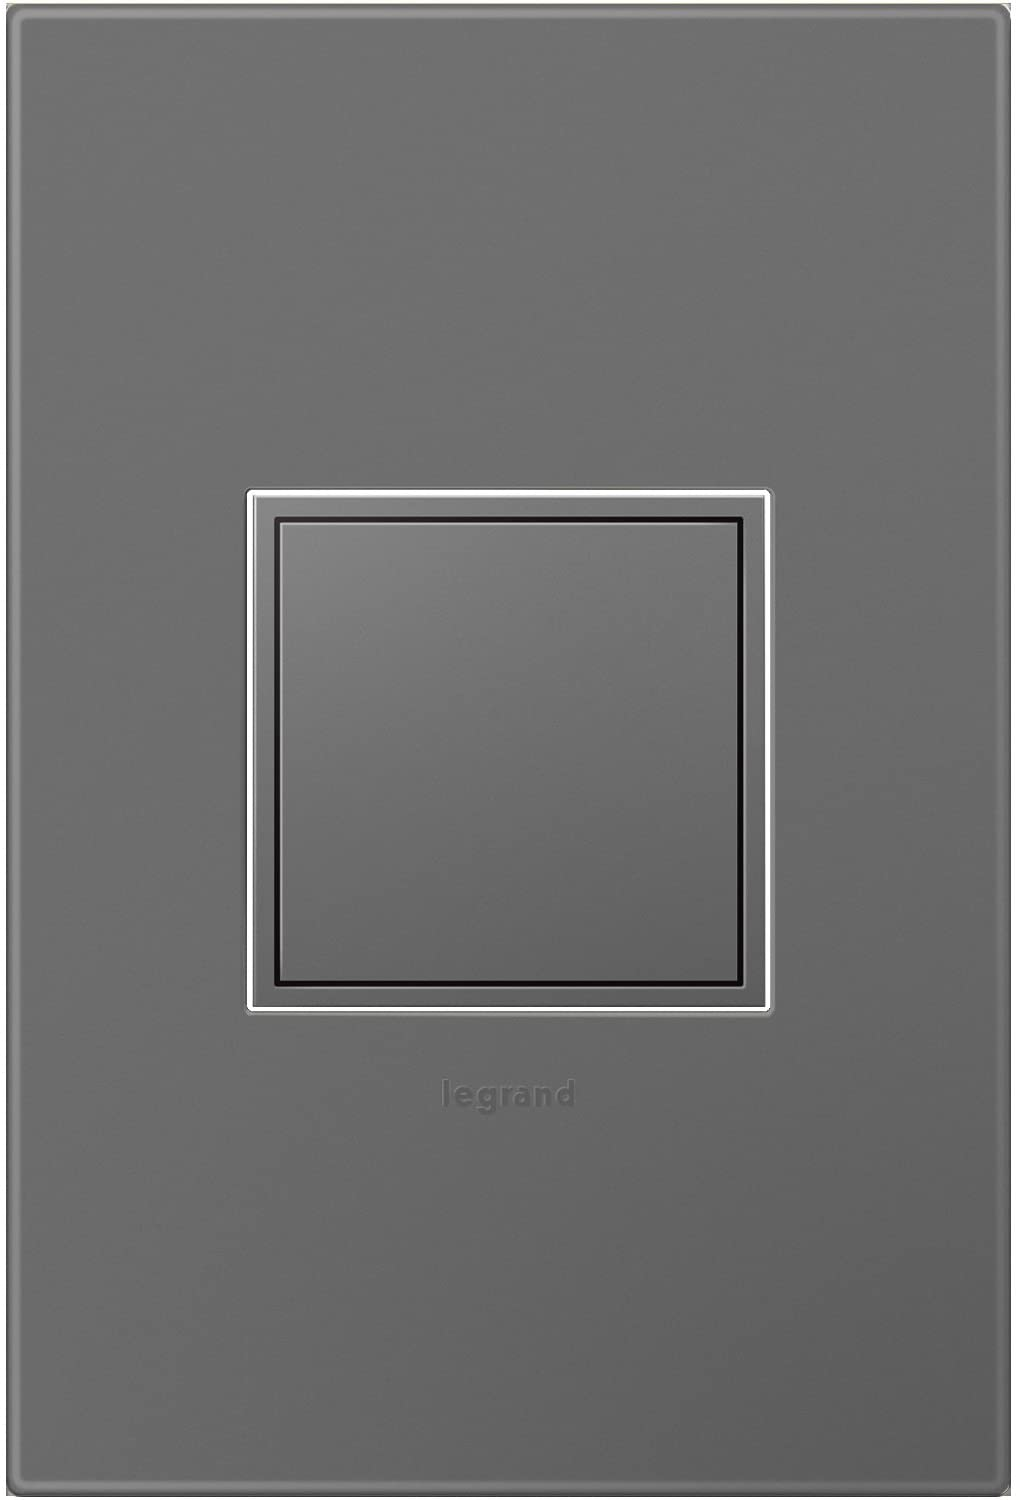 Legrand adorne 15Amp 1-Gang Pop-Out Outlet in Magnesium With Matching Wall Plate, ARPTR151GM2WP